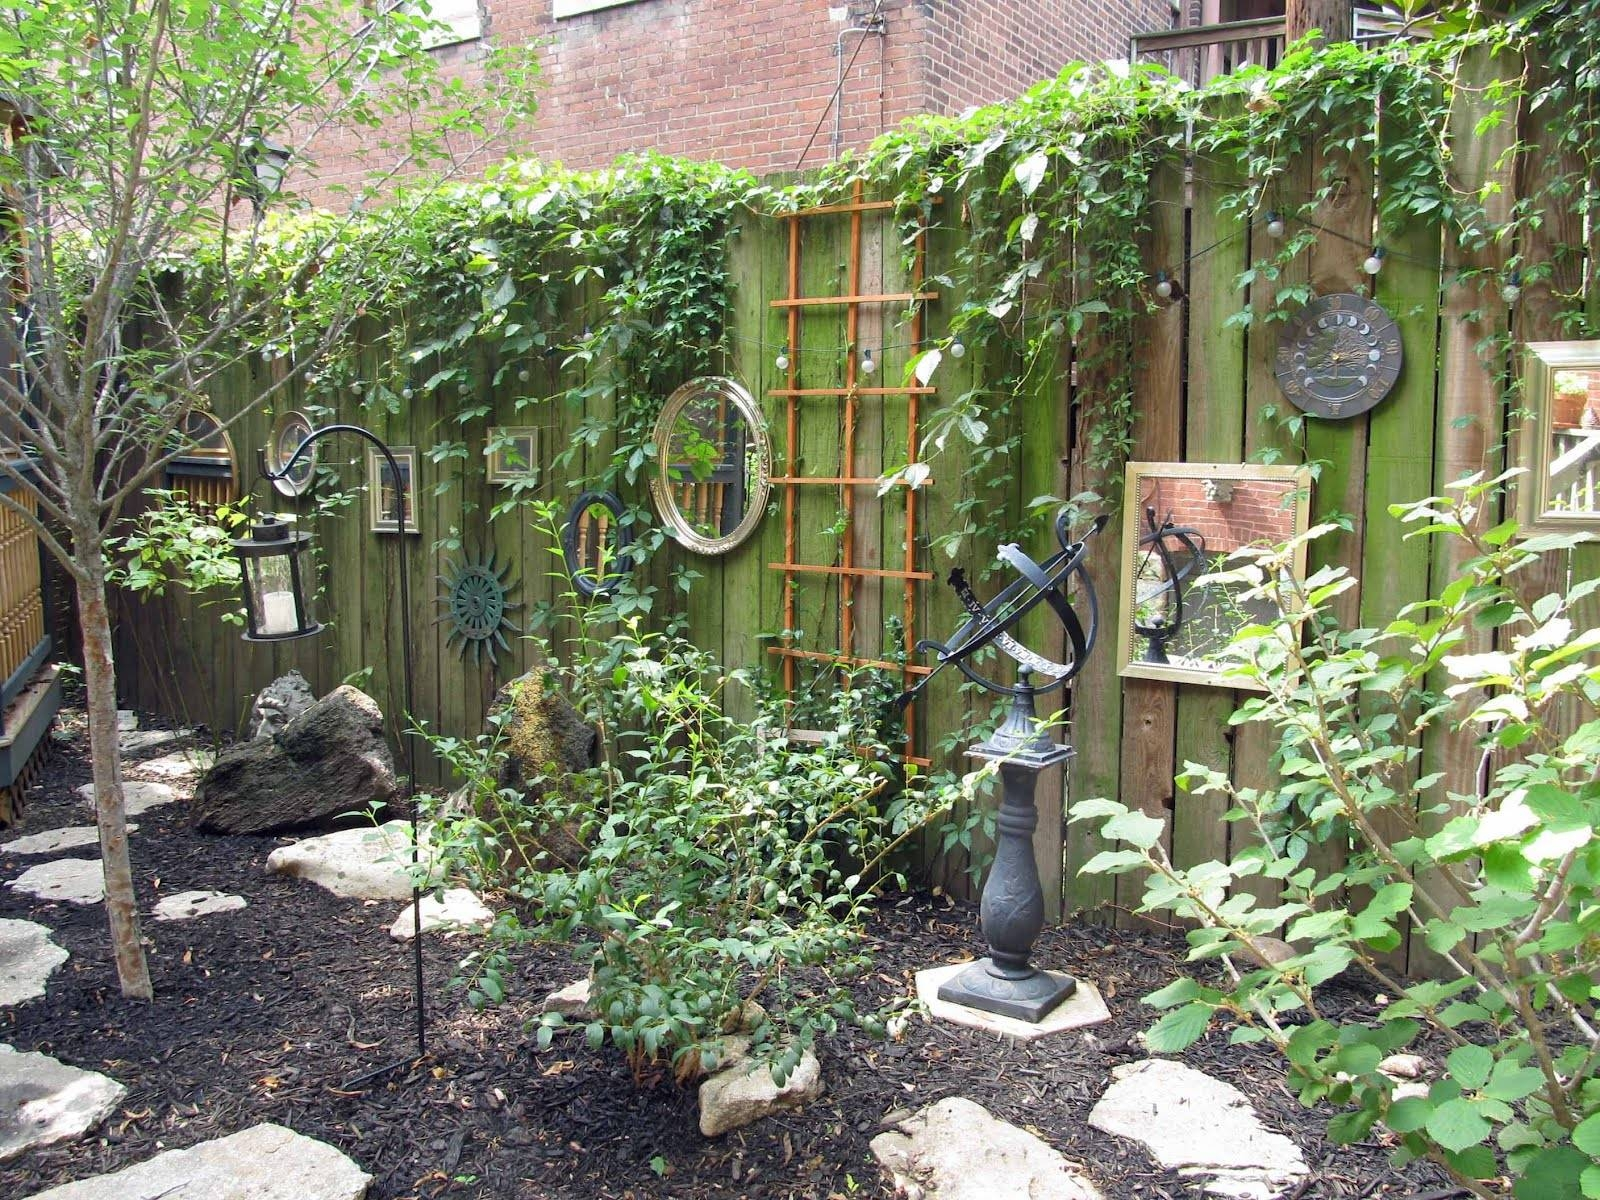 18 Dazzling Mirror Ideas For Your Garden - Garden Lovers Club with Garden Wall Mirrors (Image 4 of 25)